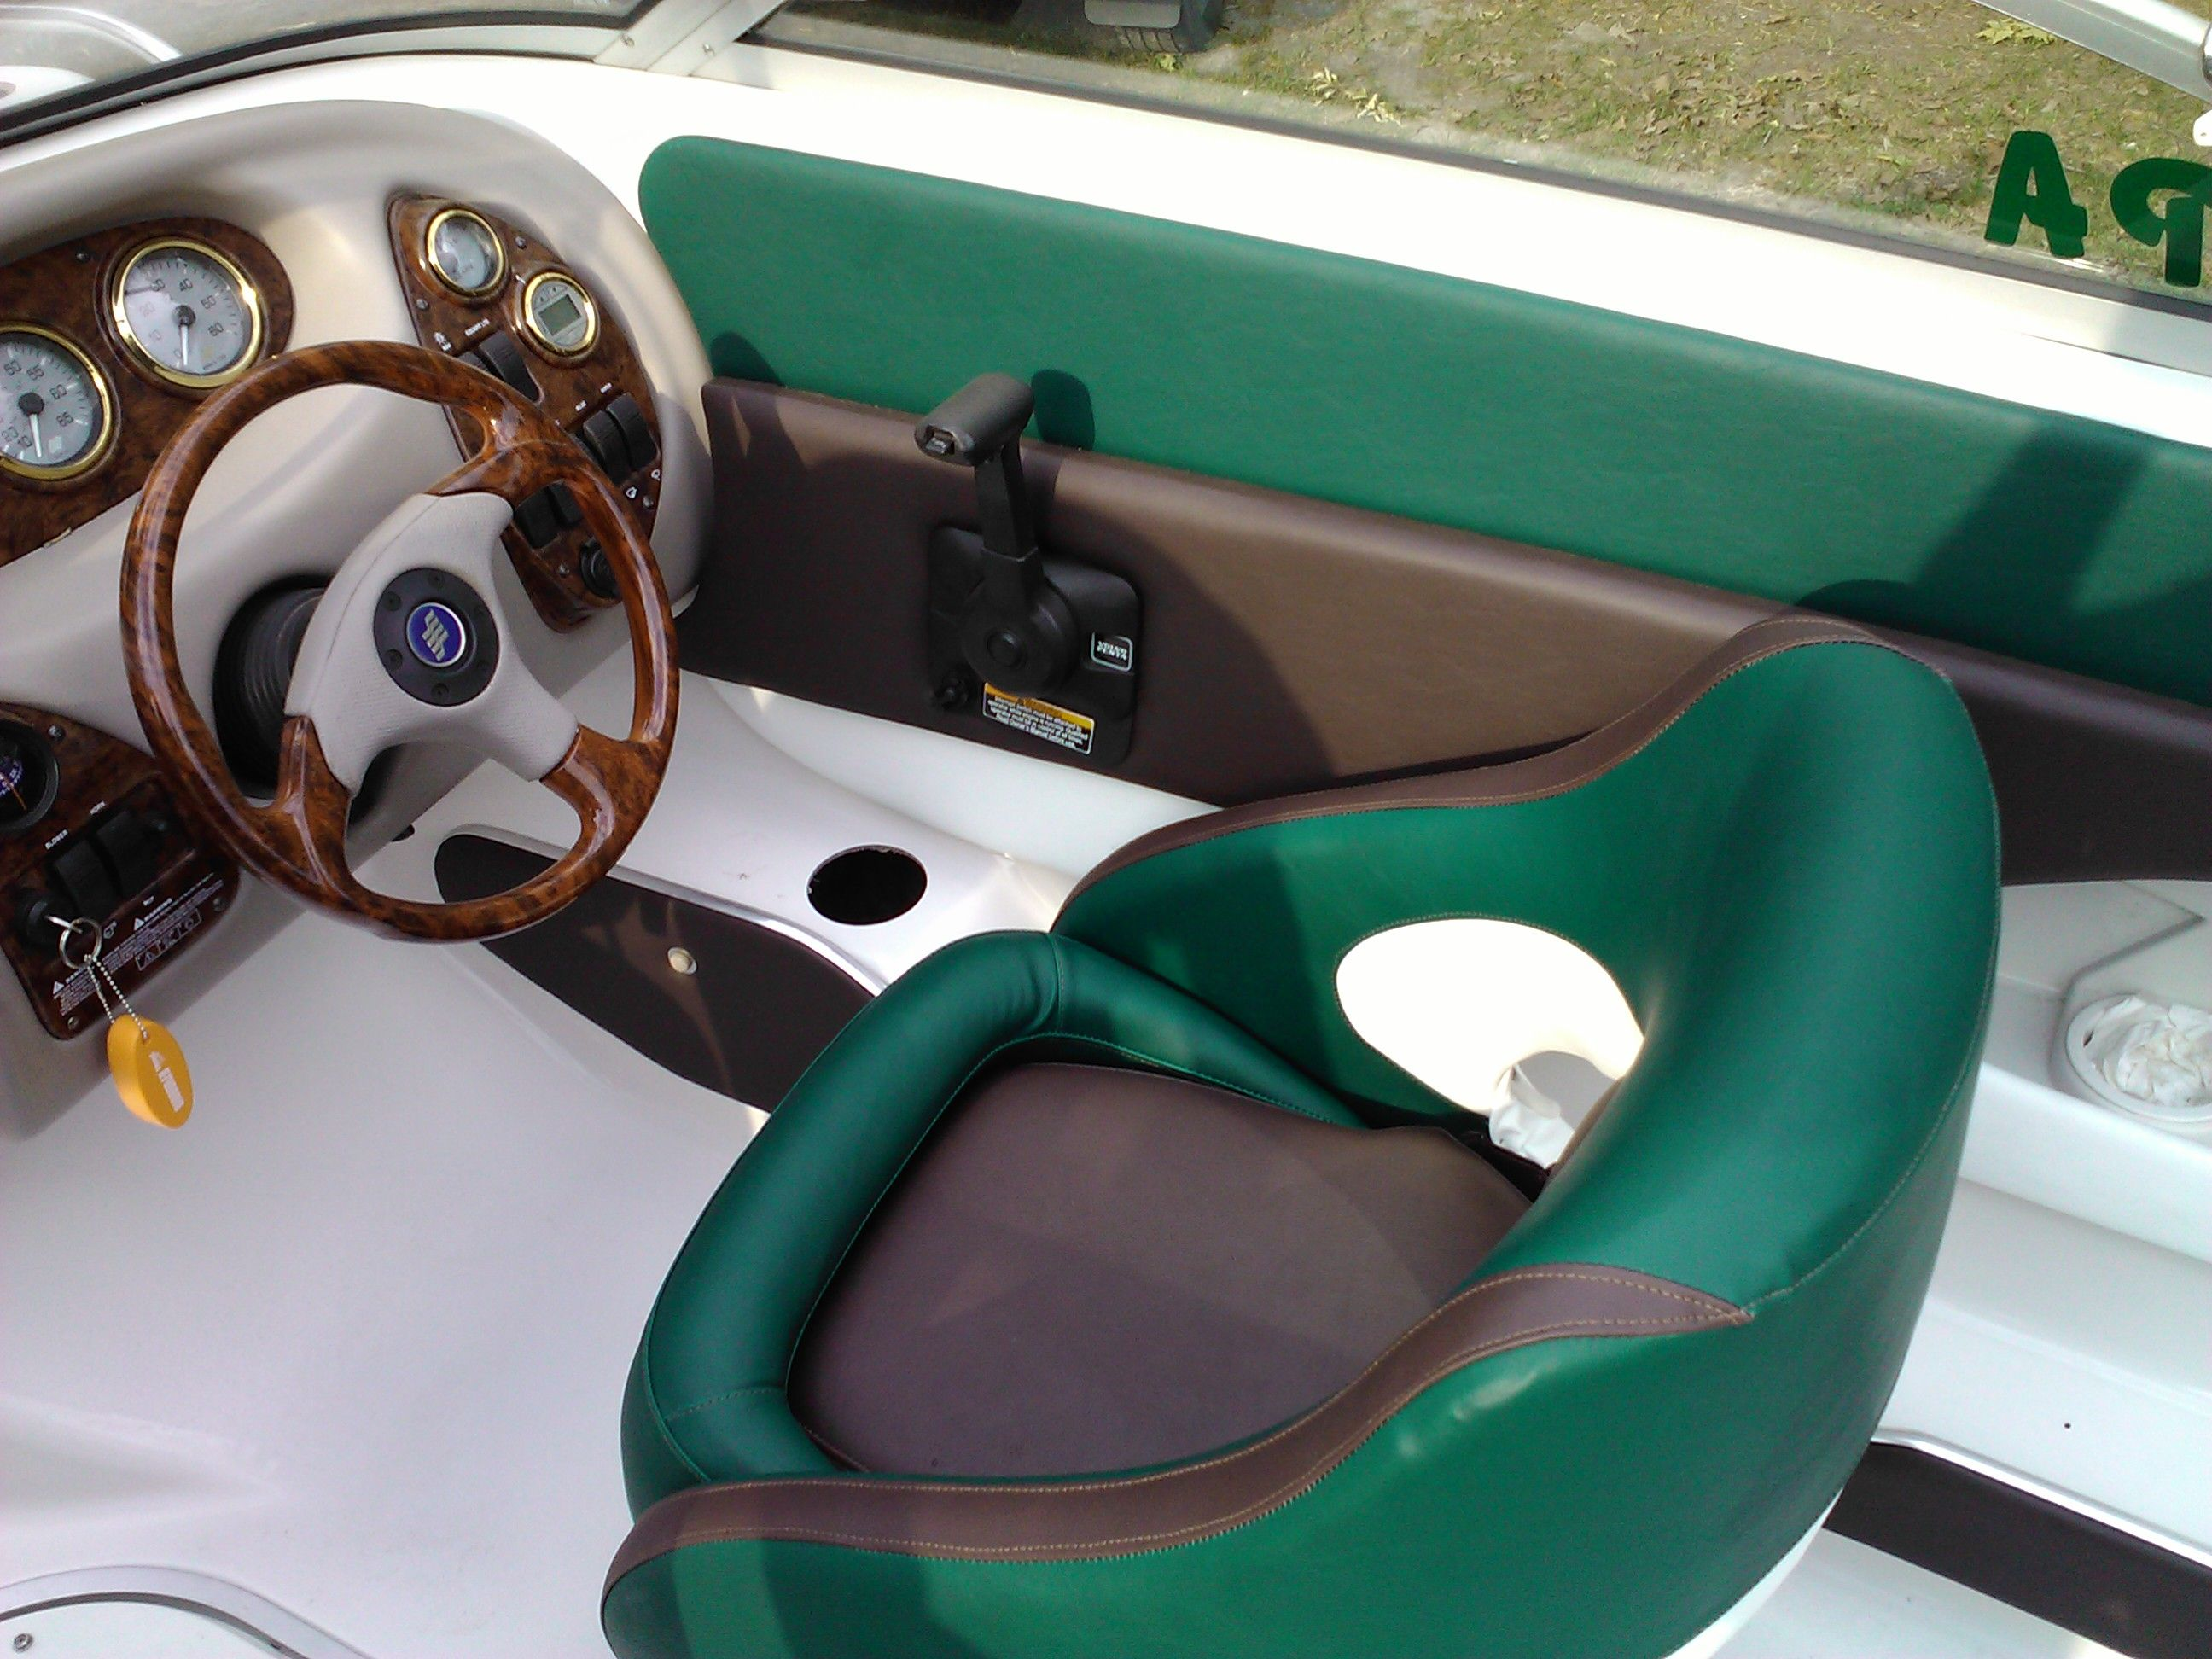 Custom Boat Seats In A Tri Color Design The Owner Was In Awe When He Saw The Completed Project